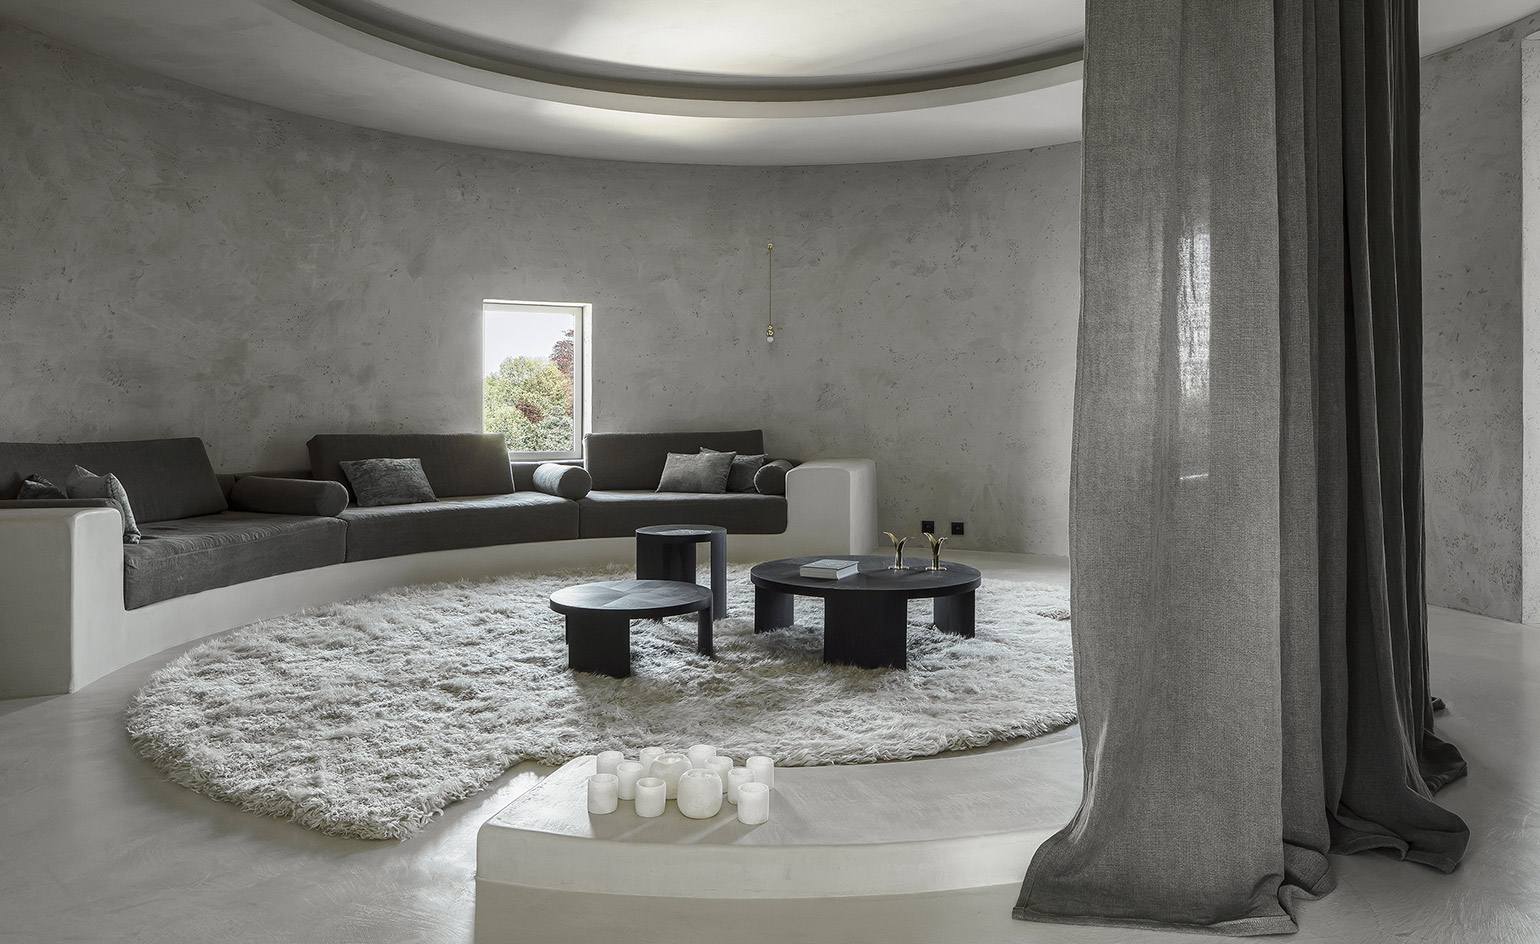 latest living room wallpaper designs rooms black leather couch arjaan de feyter an antwerp apartment in a silo ...